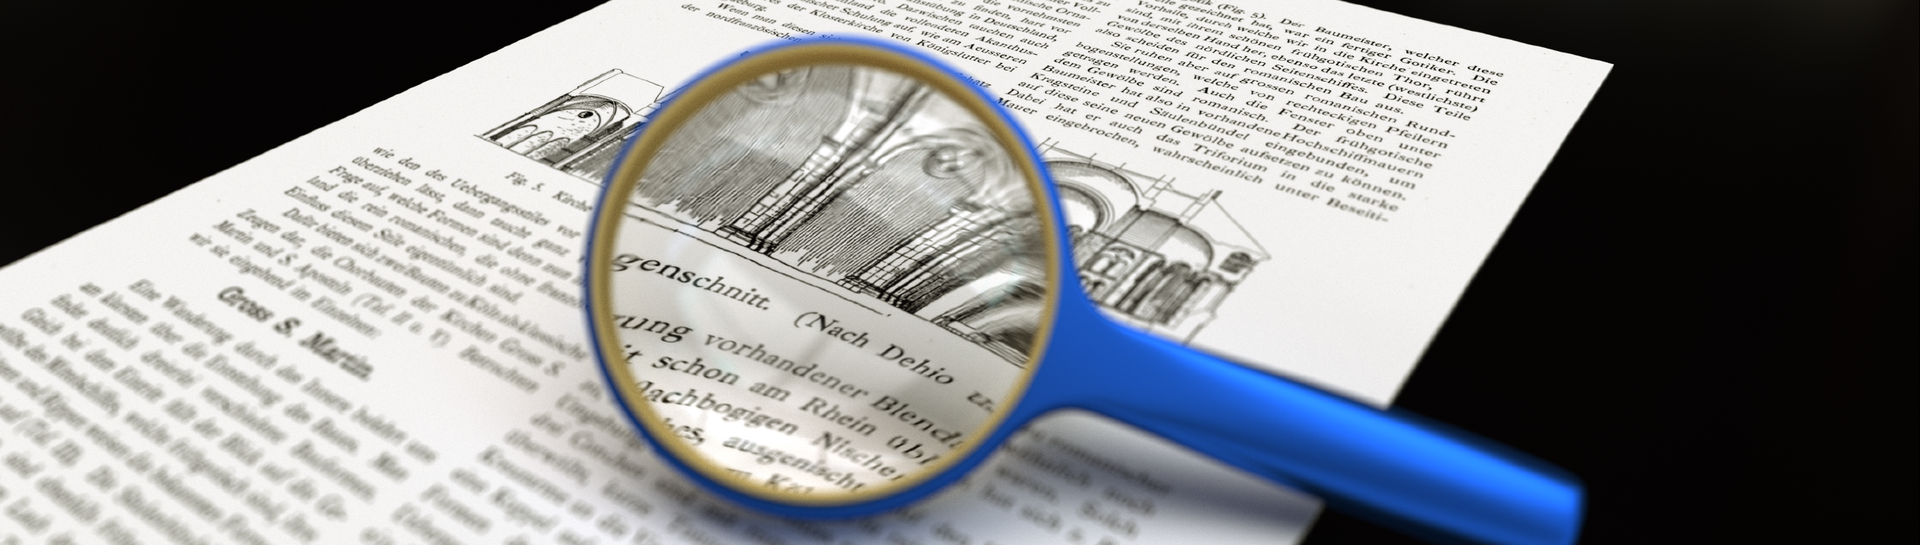 Magnifying_glass_with_focus_on_paper_result